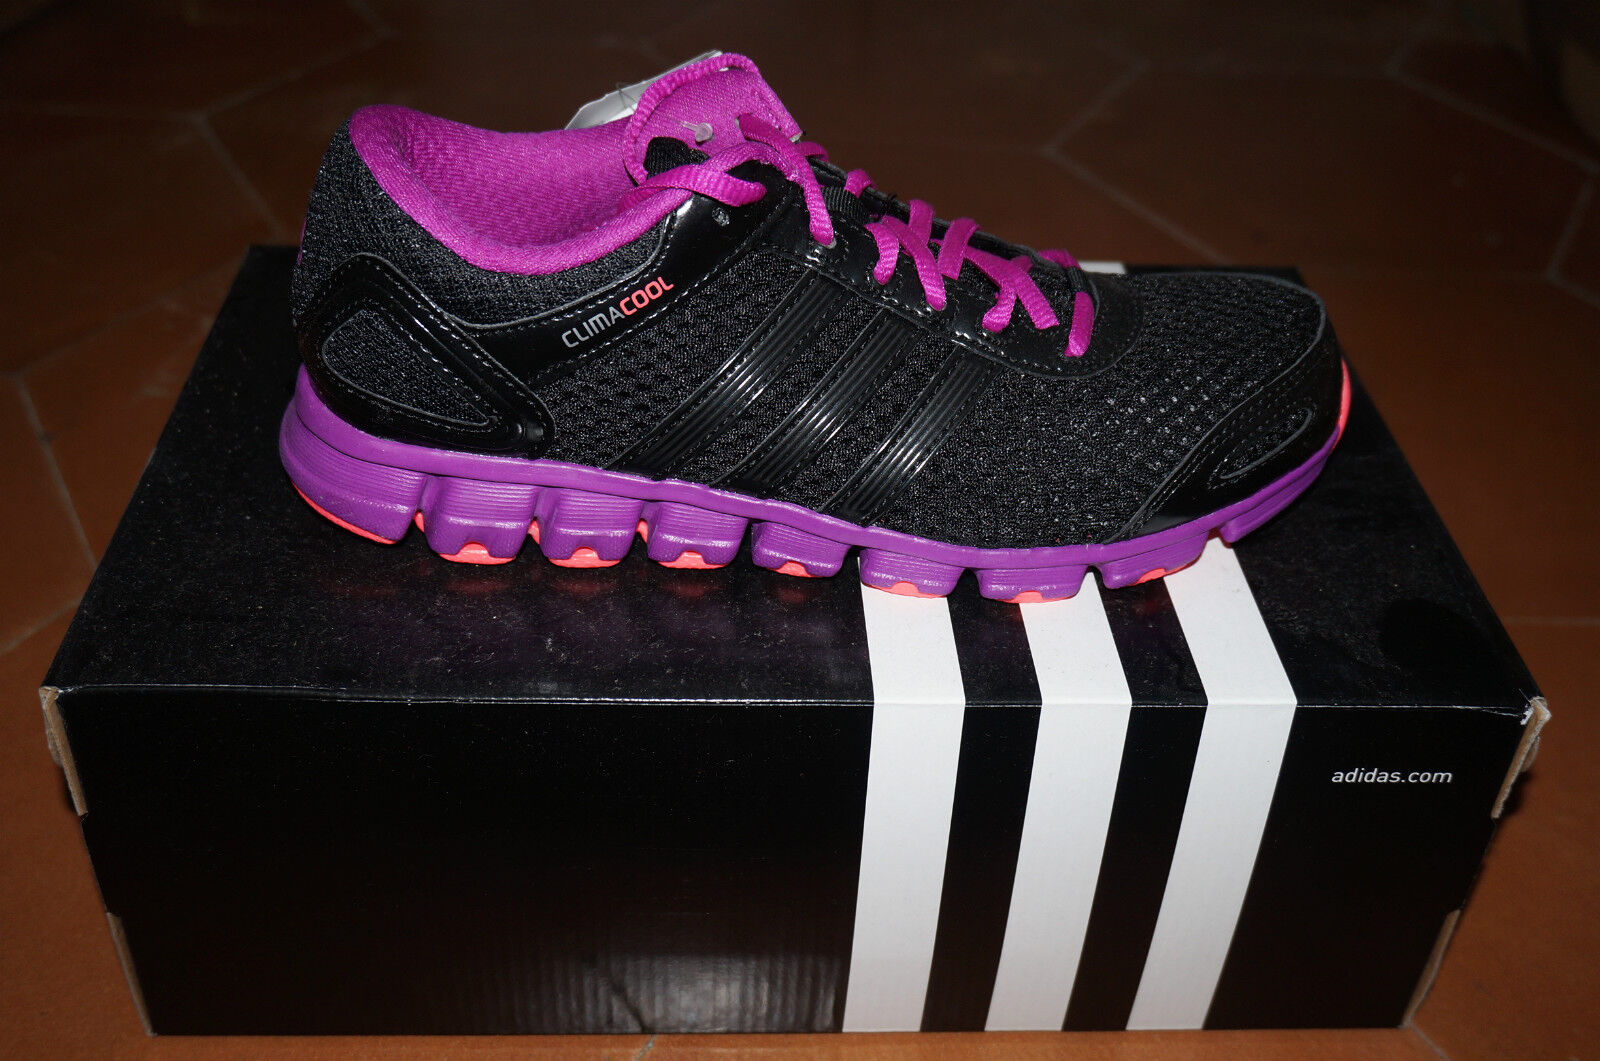 ADIDAS CC MODULATE W SHOES ORIGINAL RUNNING NEGRO (PRICE IN SHOP 99EUROS)